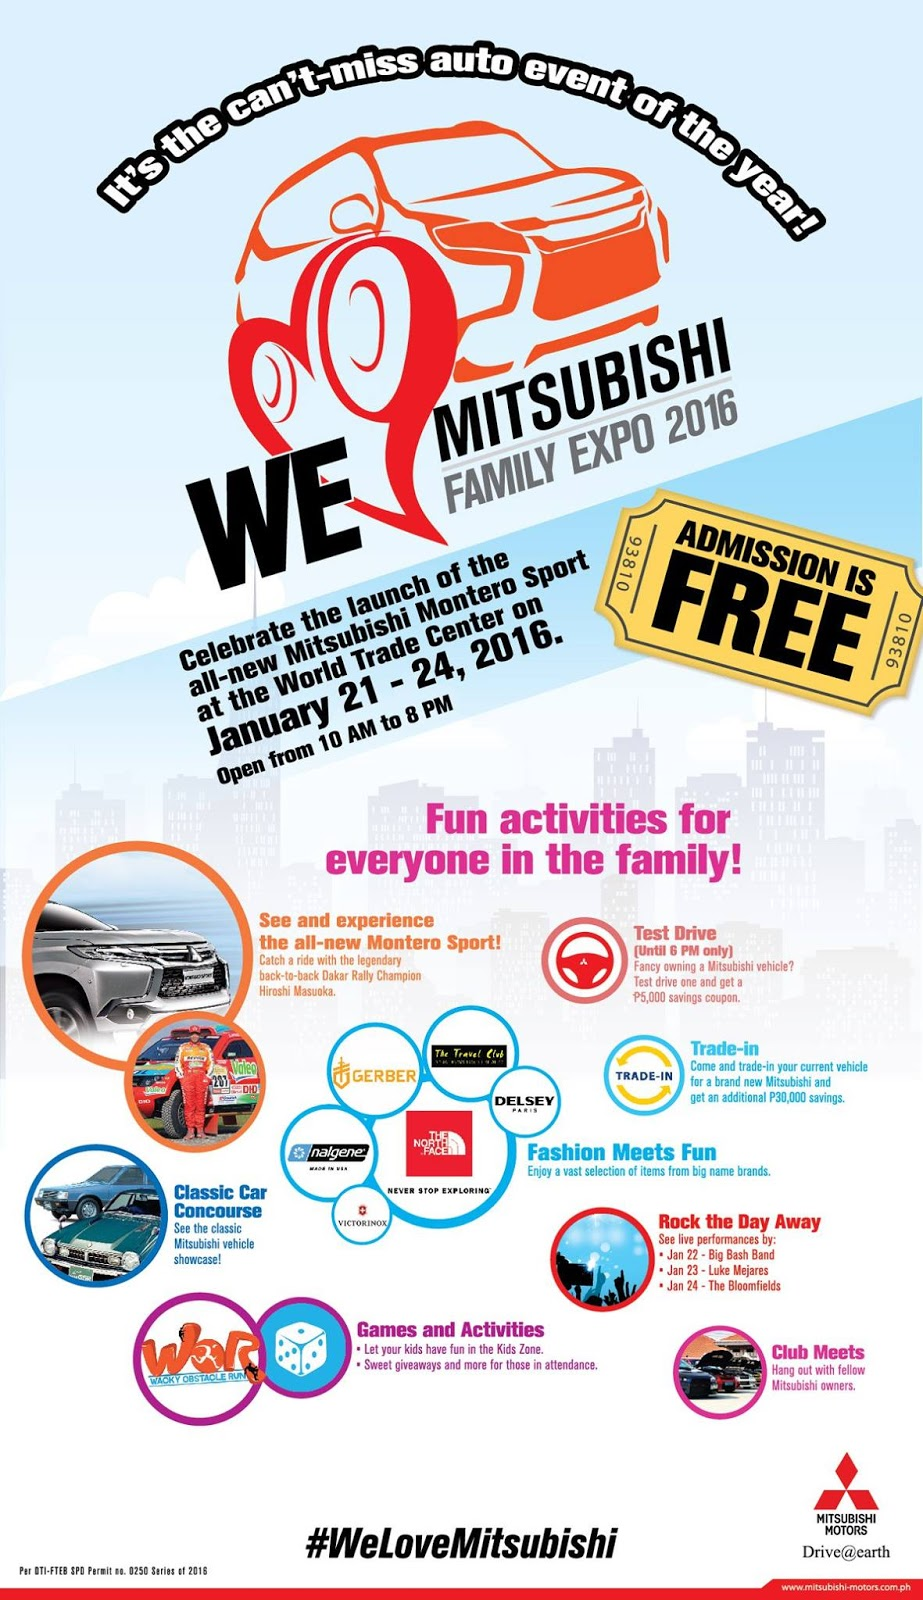 We Love Mitsubishi Family Expo